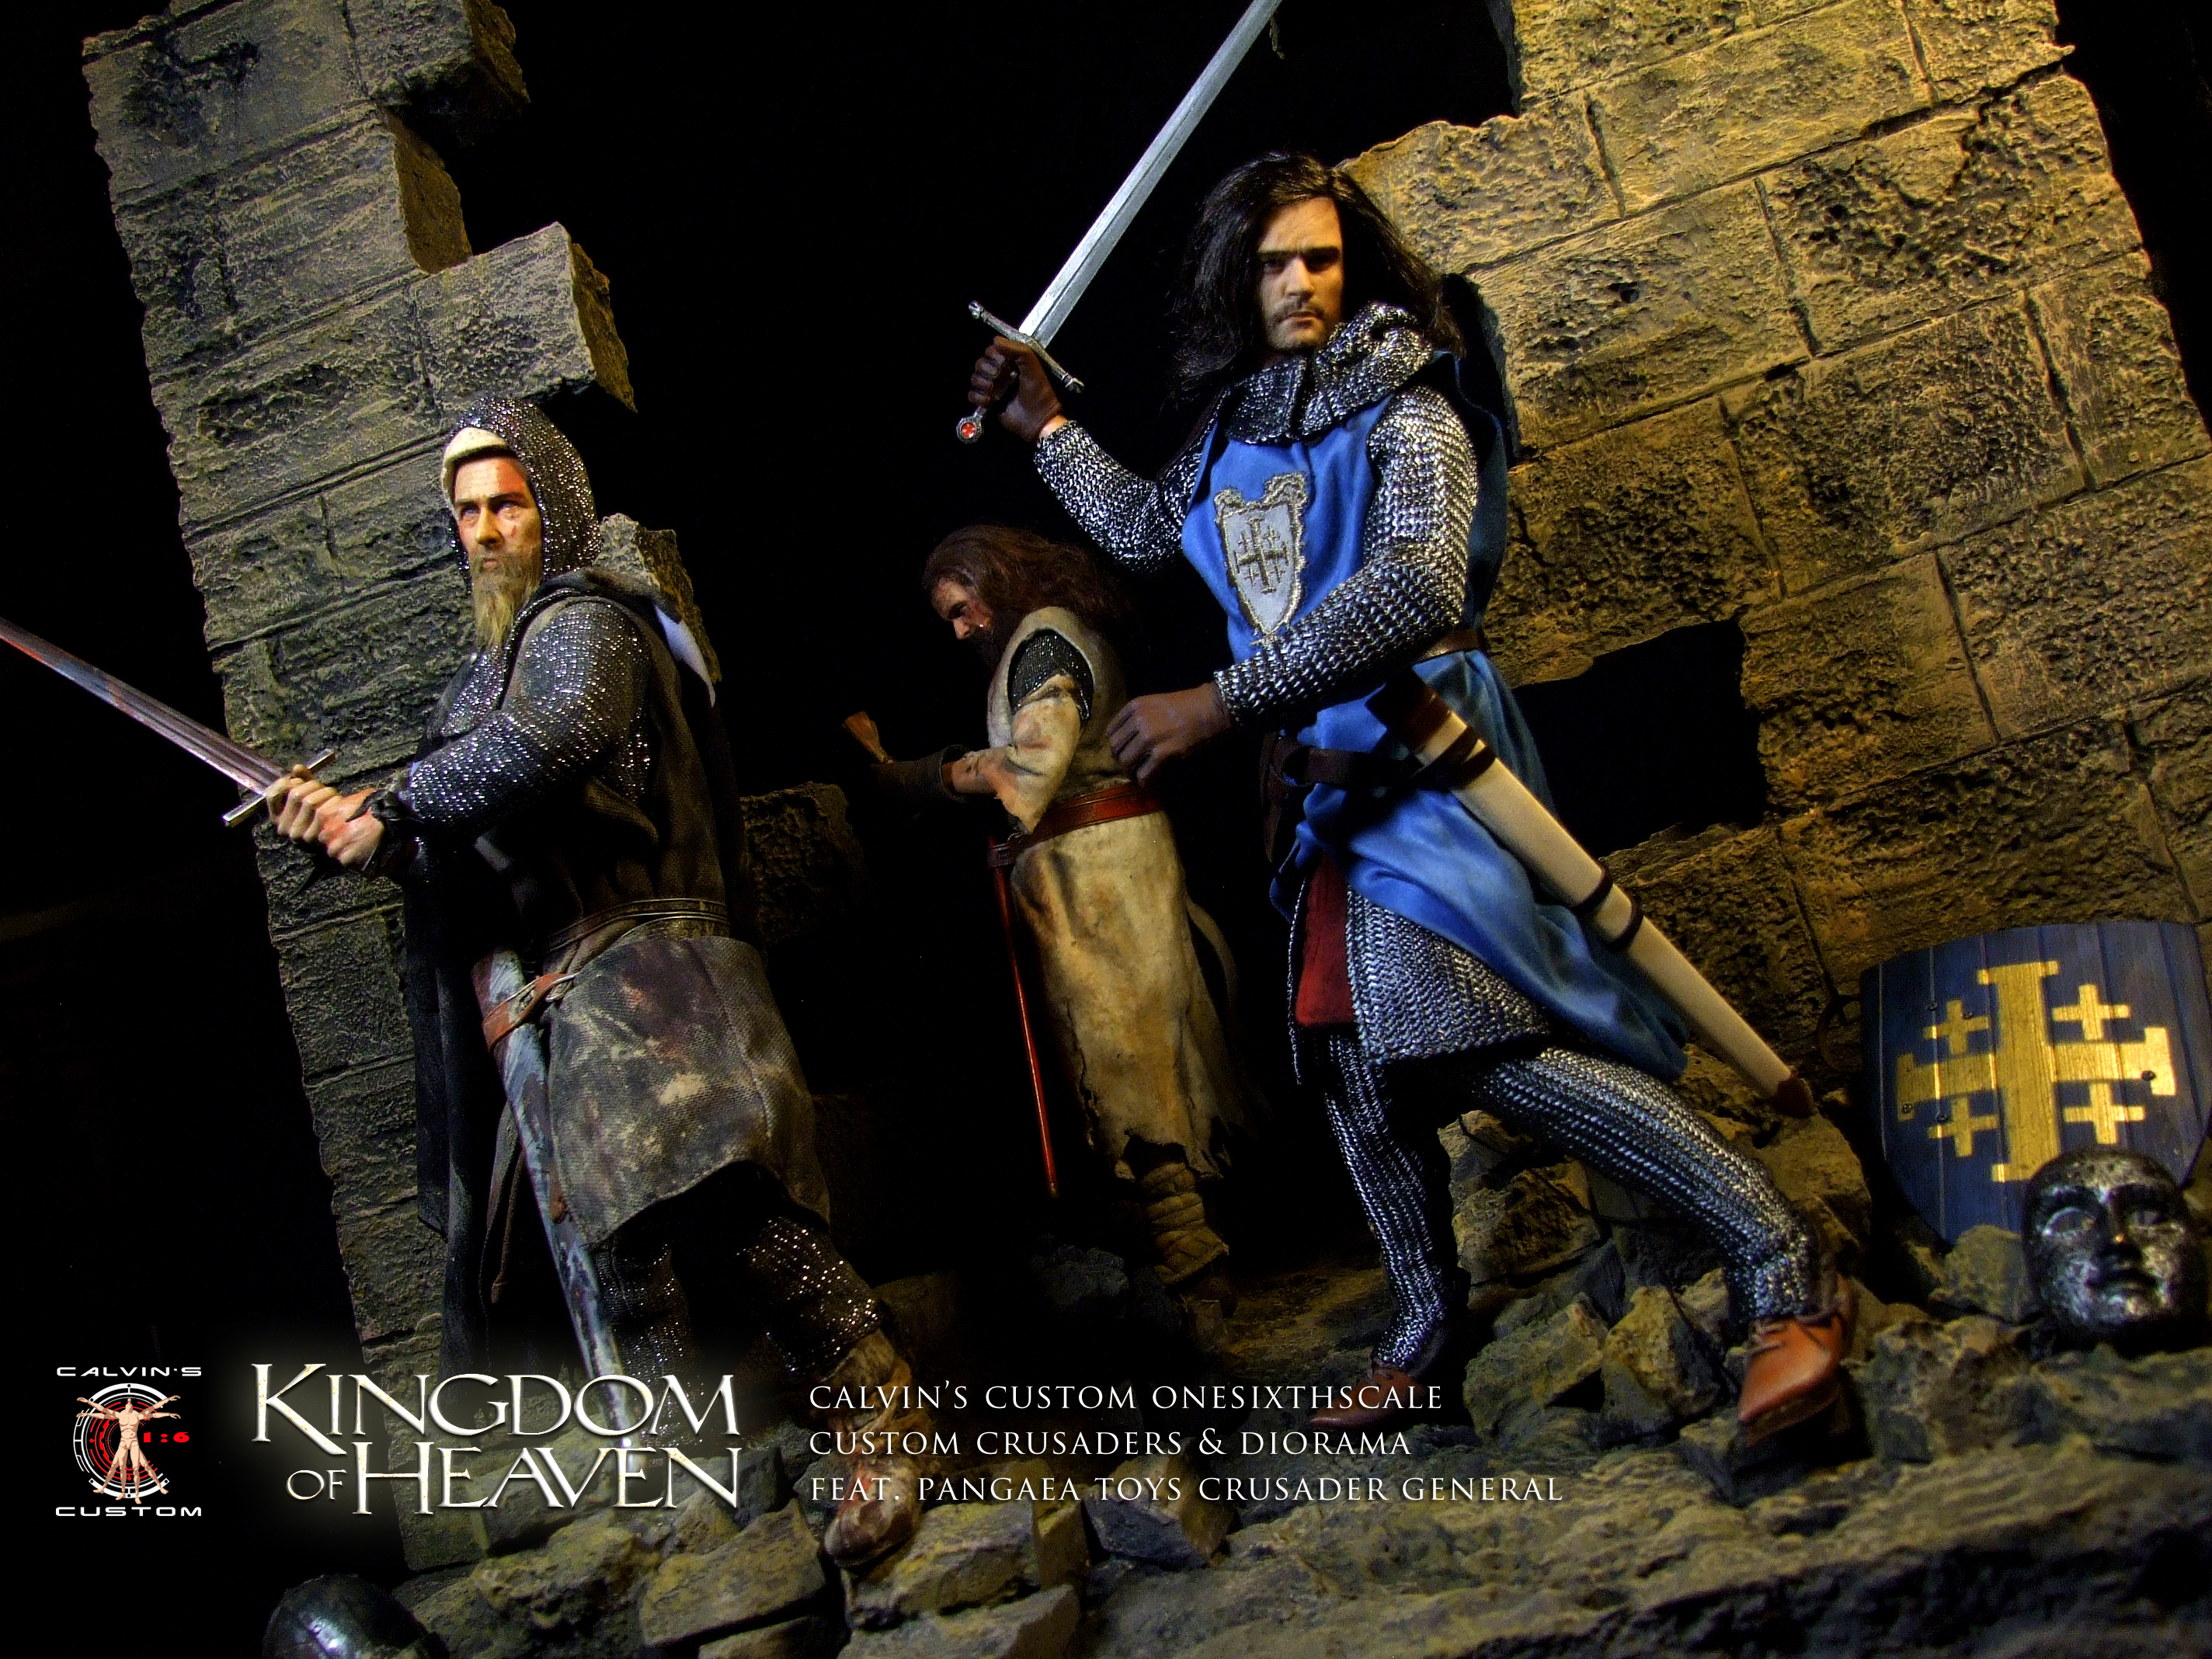 kingdom of heaven images calvins custom 16 onesixthscale